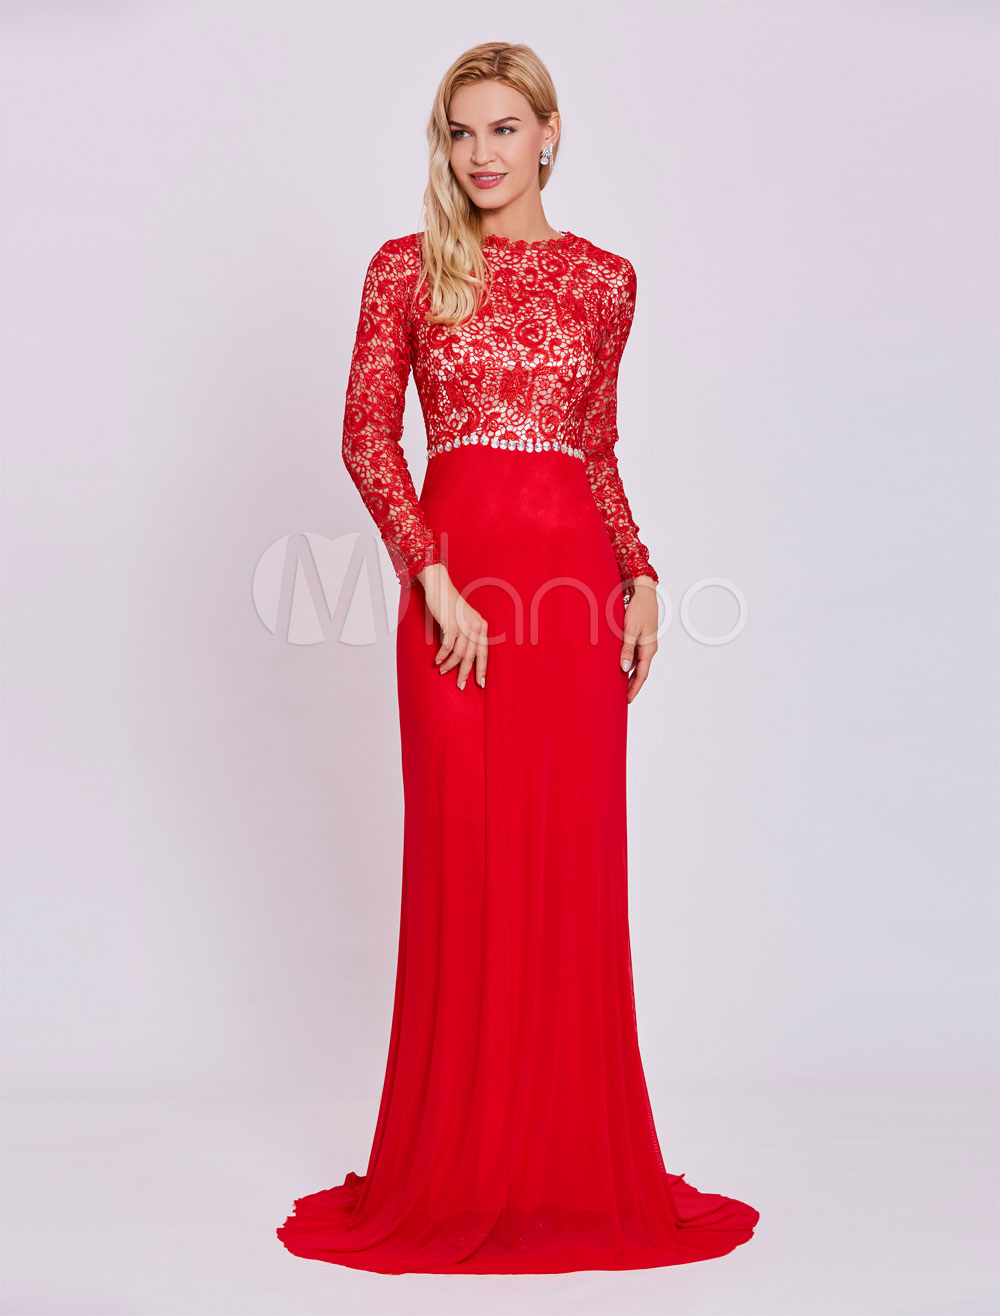 Red Evening Dresses Lace Long Sleeve Chiffon Beading Mermaid Formal Gown With Train (Wedding Cheap Party Dress) photo